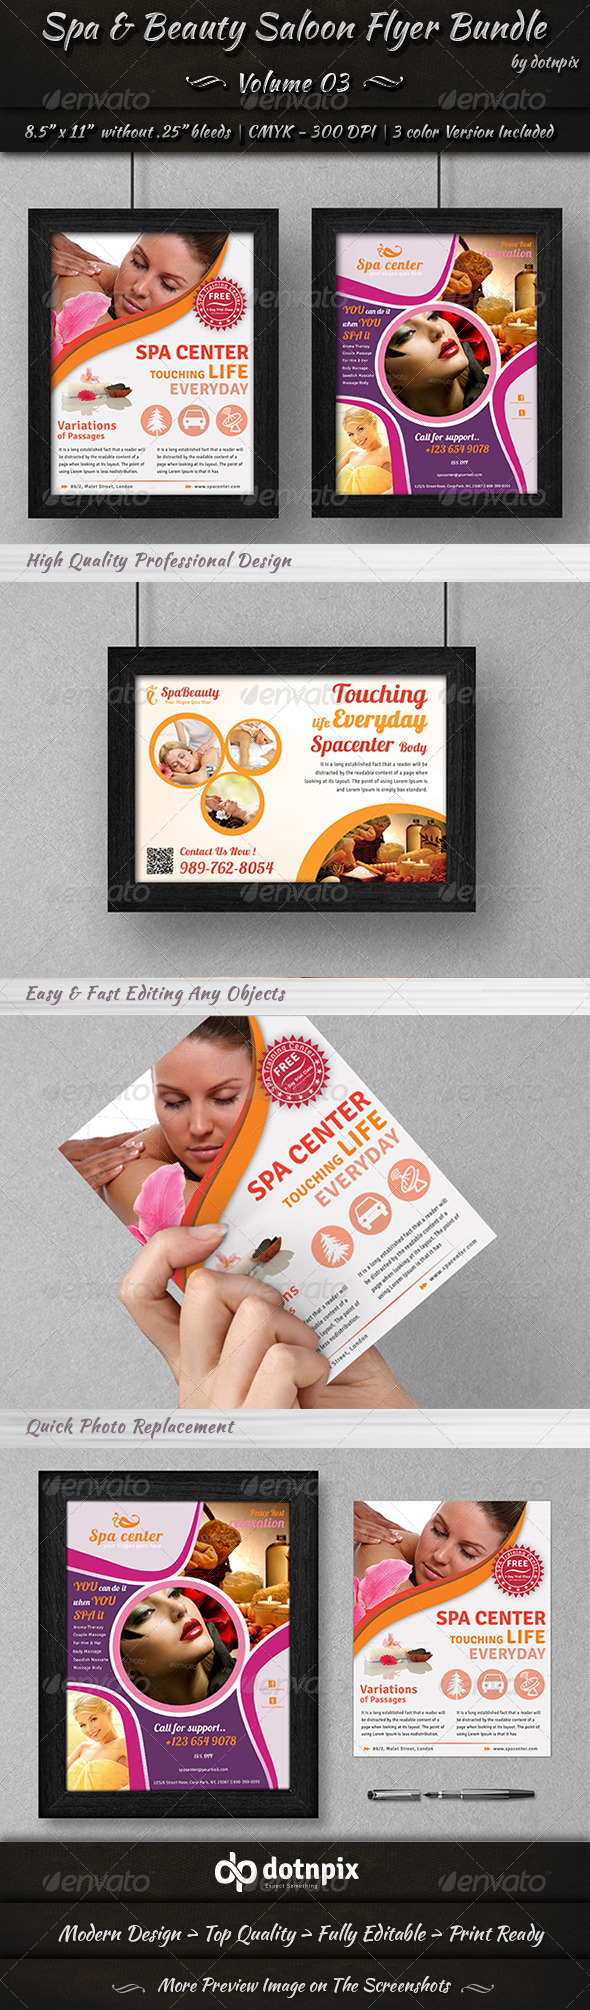 GraphicRiver Spa & Beauty Saloon Flyer Bundle Volume 3 6965529